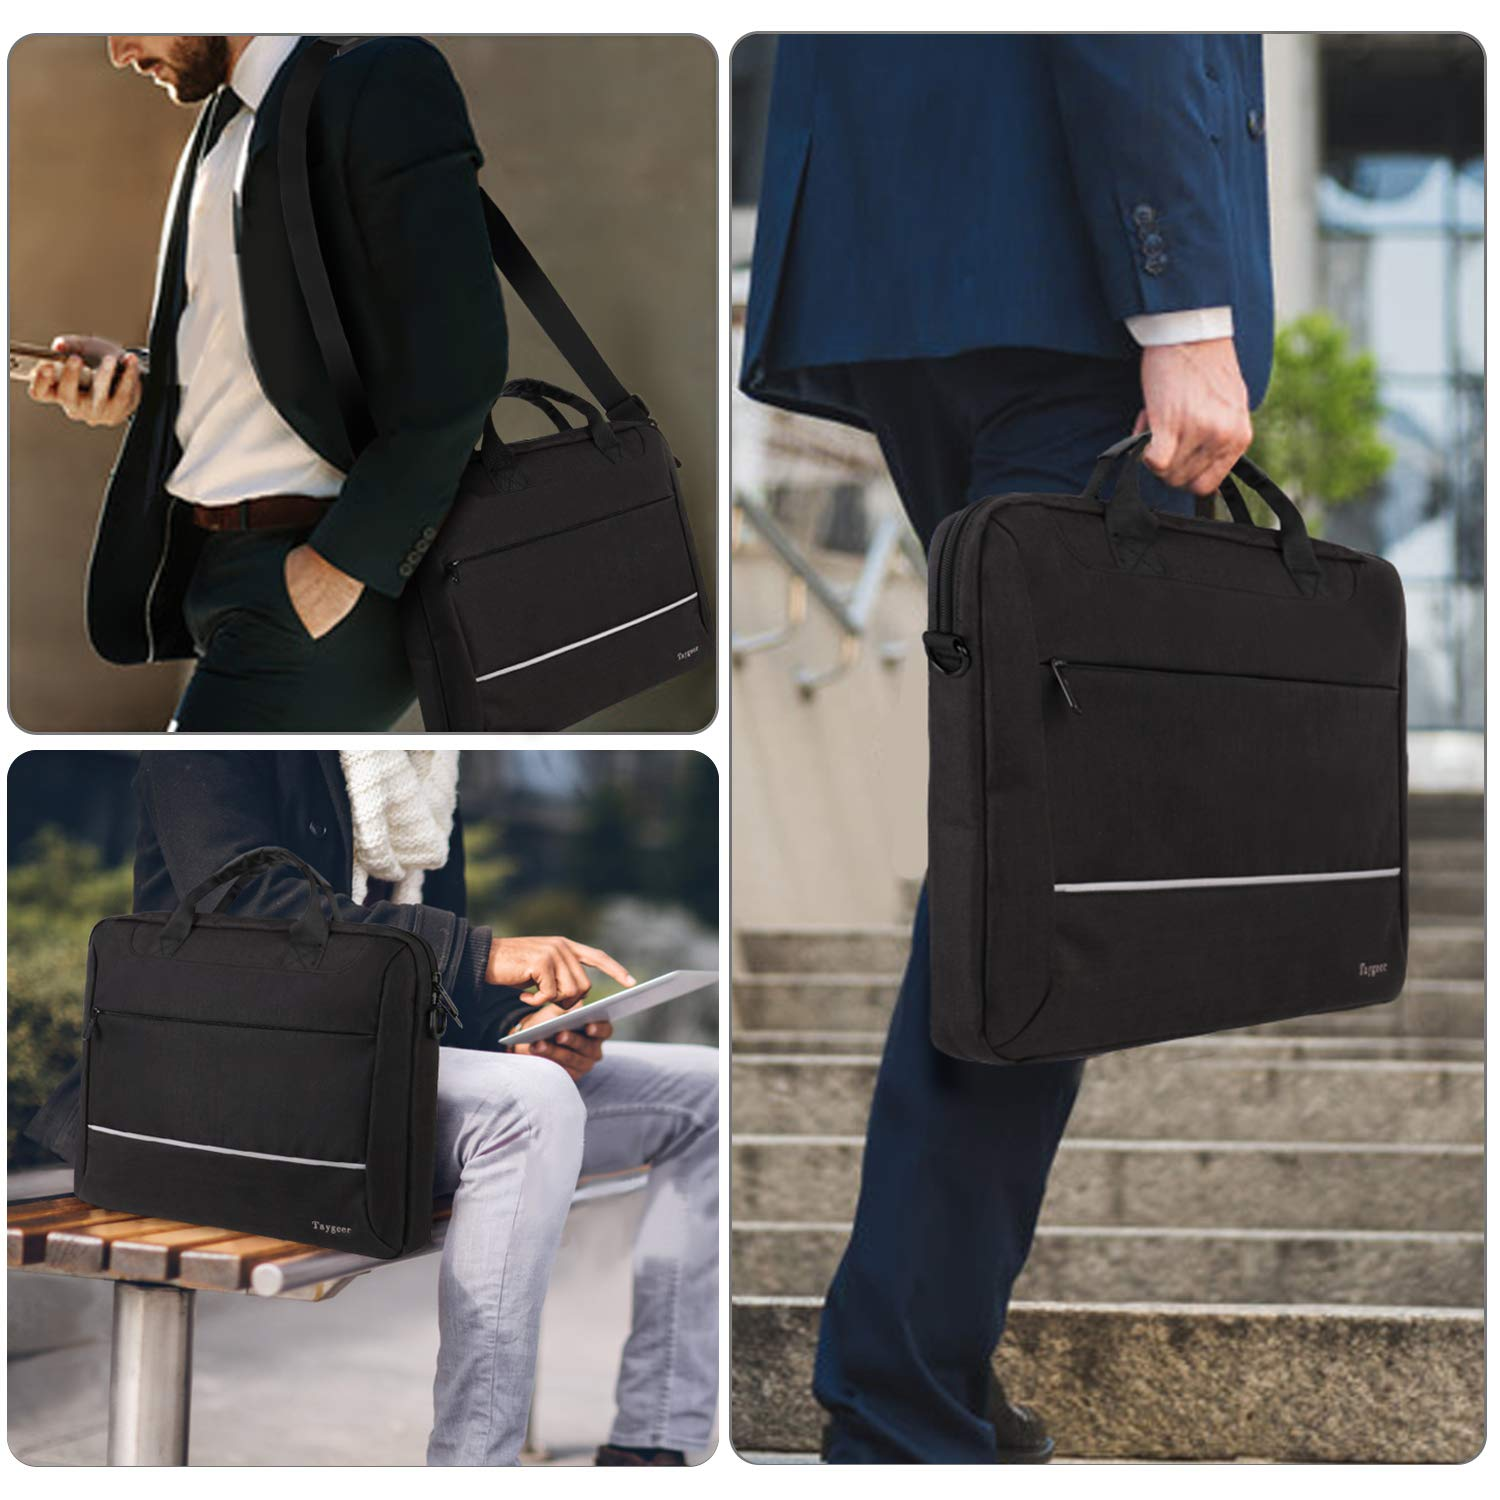 Taygeer Laptop Bag 15.6 inch, Slim Laptop Briefcase for Men Women, Business Portable Carrying Case Computer Shoulder Bag, Tablet Attache Compatible with HP Dell Lenovo Asus Microsoft Surface, Black by Taygeer (Image #7)